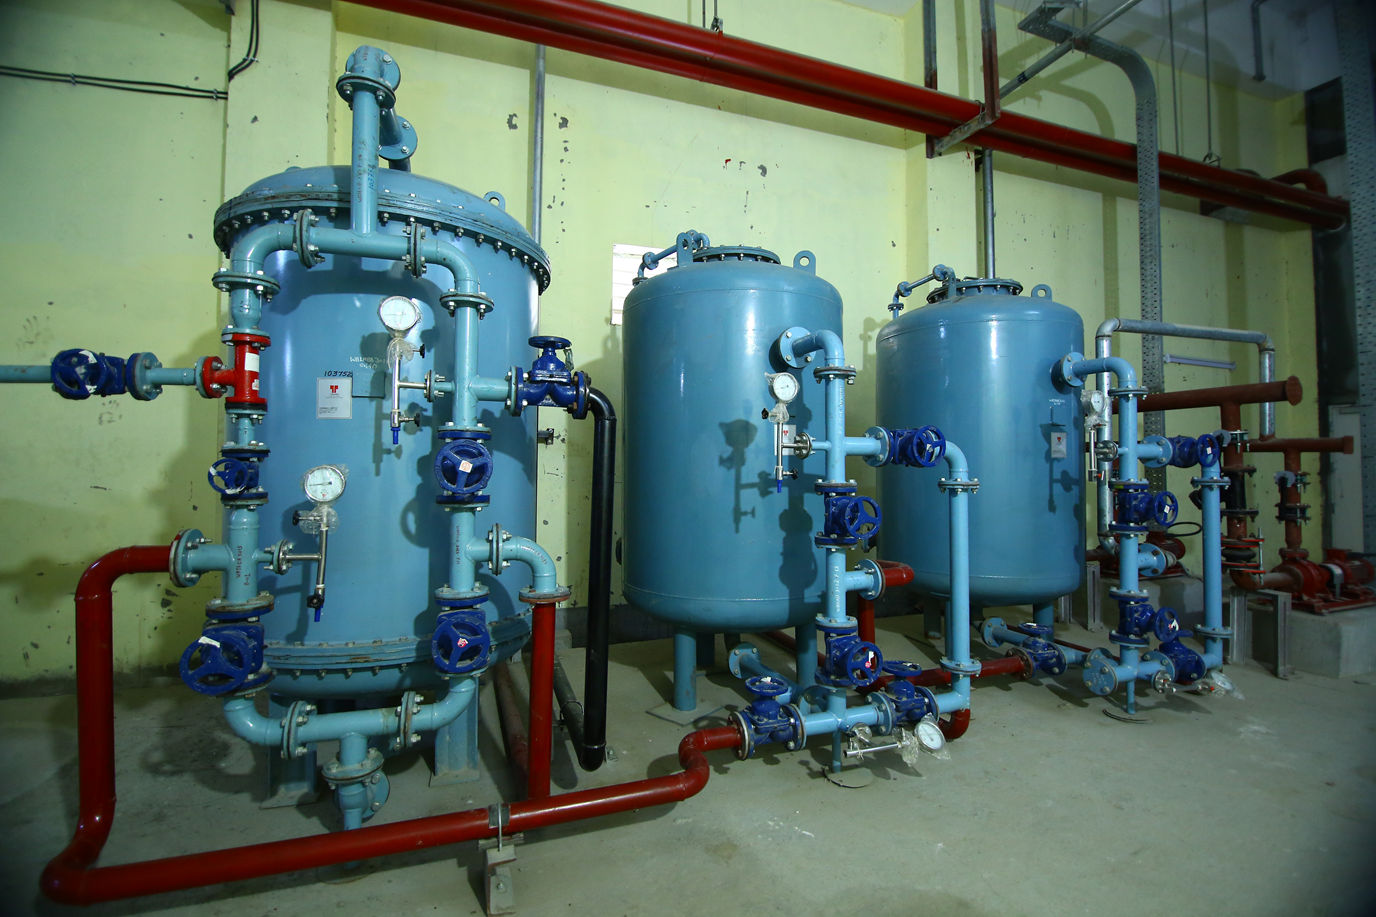 Plumbing Amp Fire Fighting Projects